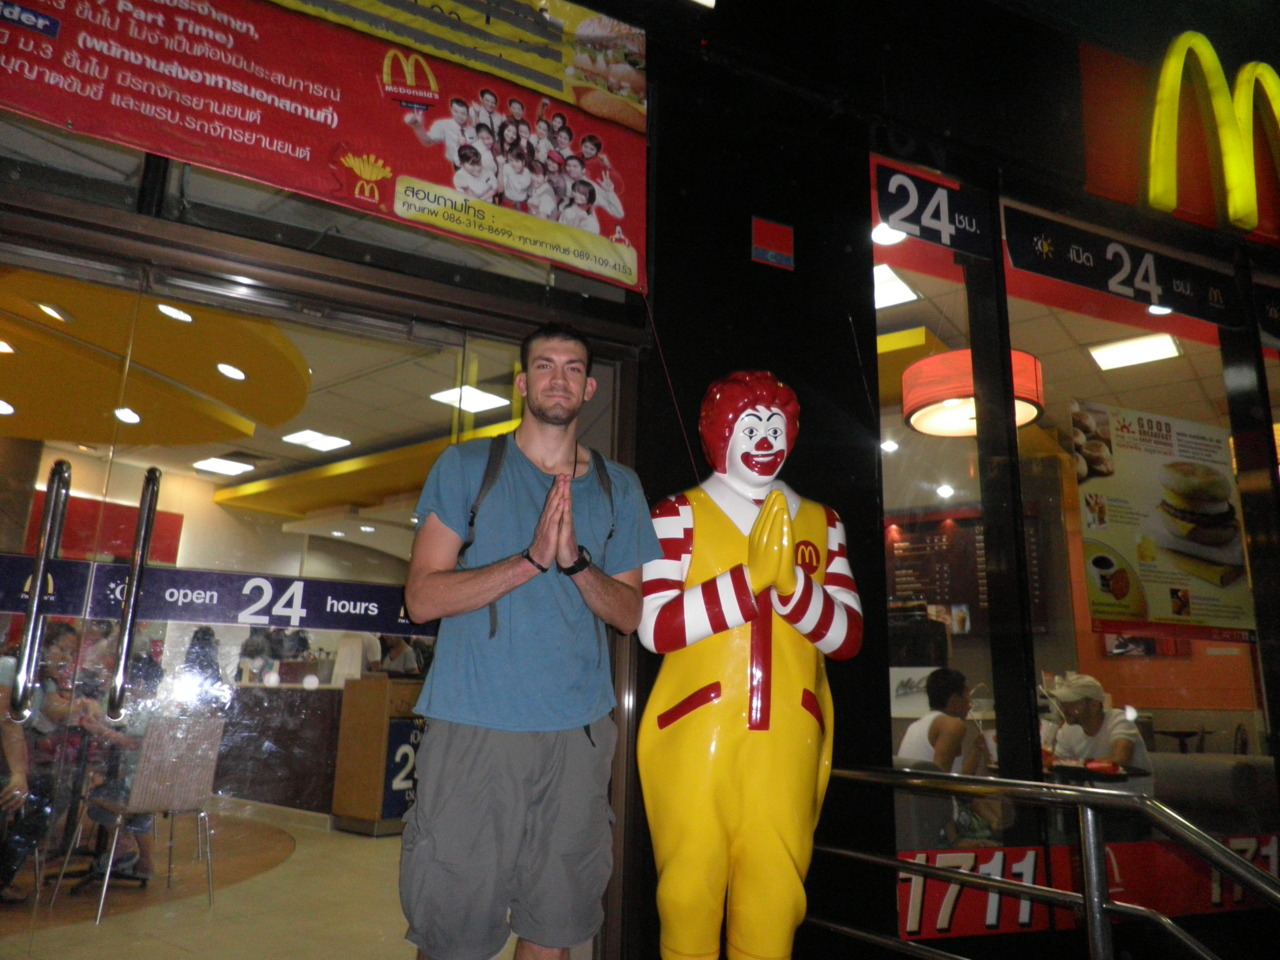 Ronald in Thailand.